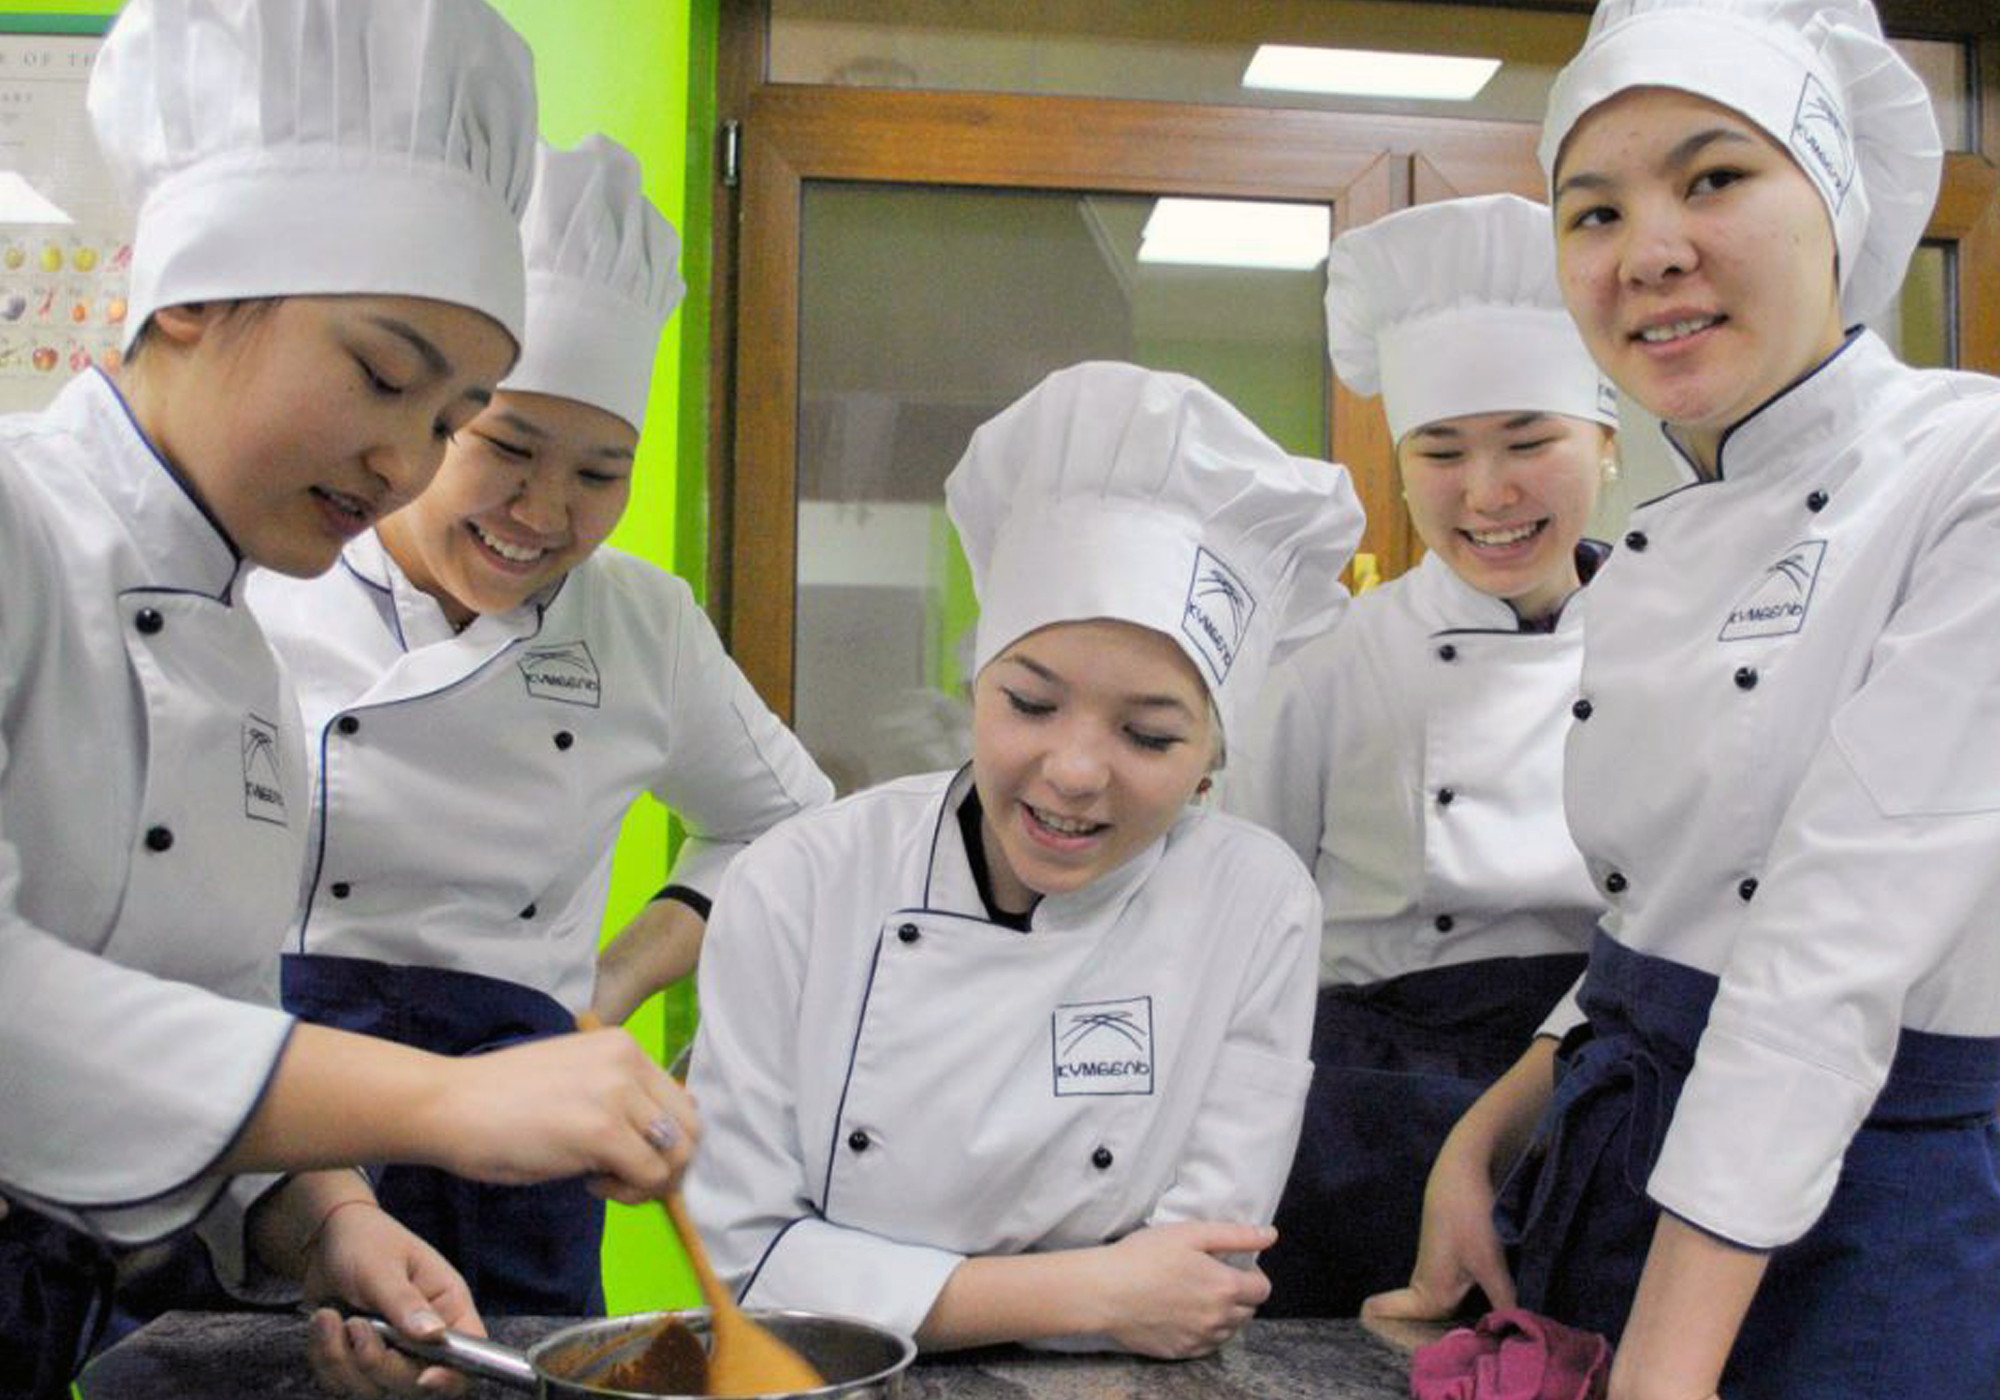 Kumbel teaches skills for jobs in hospitality, tourism and catering